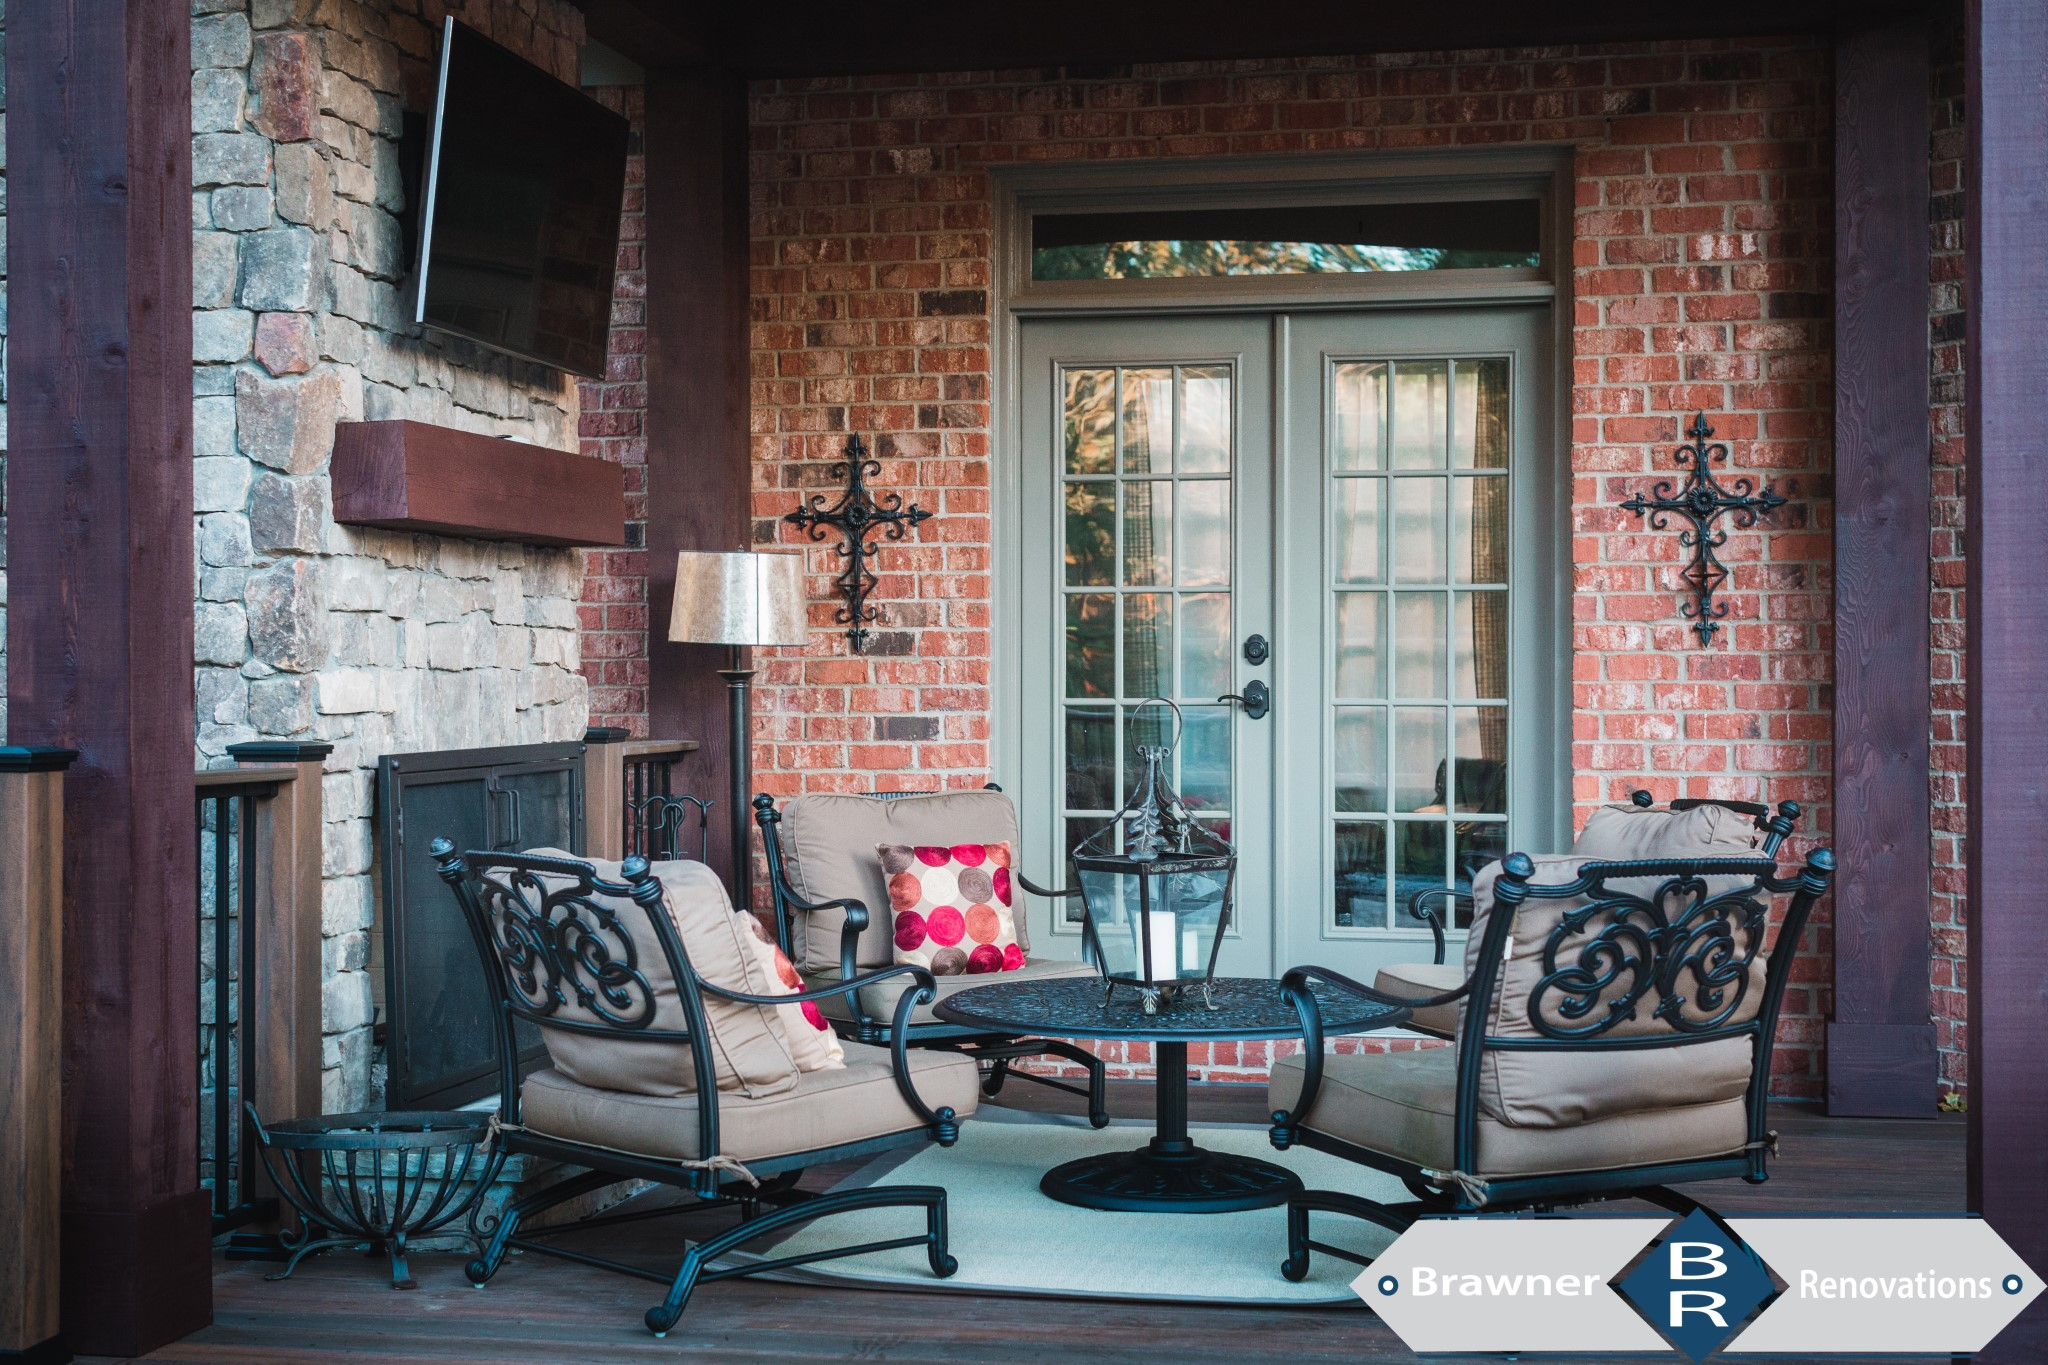 Brawner Renovations Outdoor Living Cobb County Smyrna Georgia Custom Covered Porch Cable Cedar Beams Cedar Board and Batten Custom Stone Fireplace With Cedar Mantle Image Porch